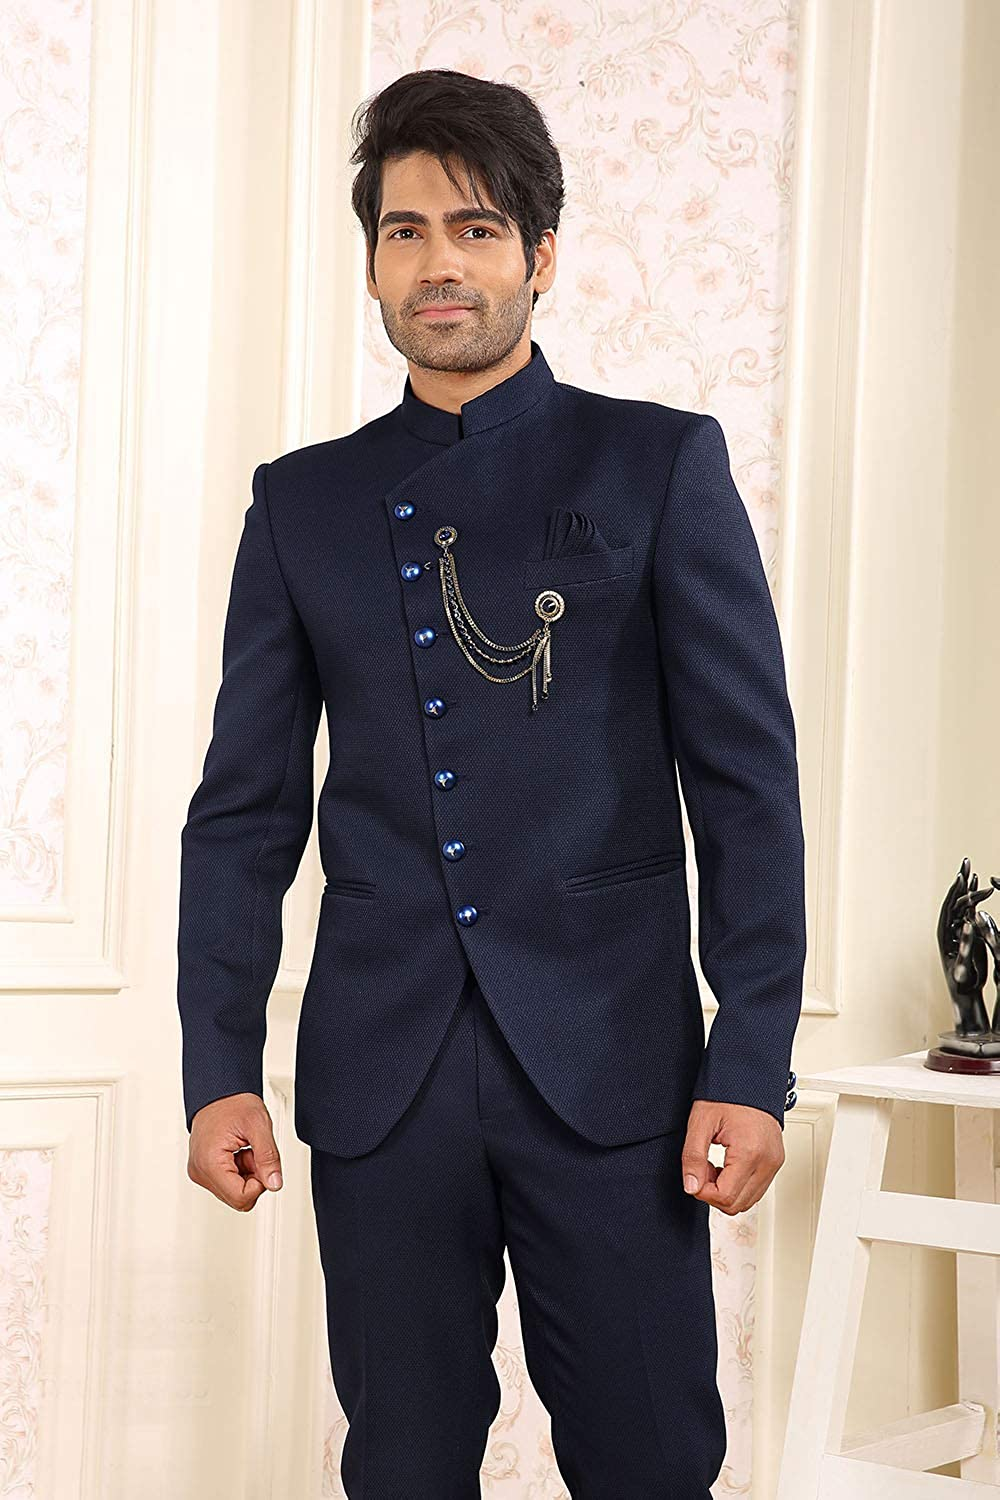 Indian Suit For Men Boys Wedding 4 Pc Suit Jodhpuri Achkan Bandhgala Suit In Navy Blue Imported Suiting Fabric Icw2297 16 36 At Amazon Men S Clothing Store